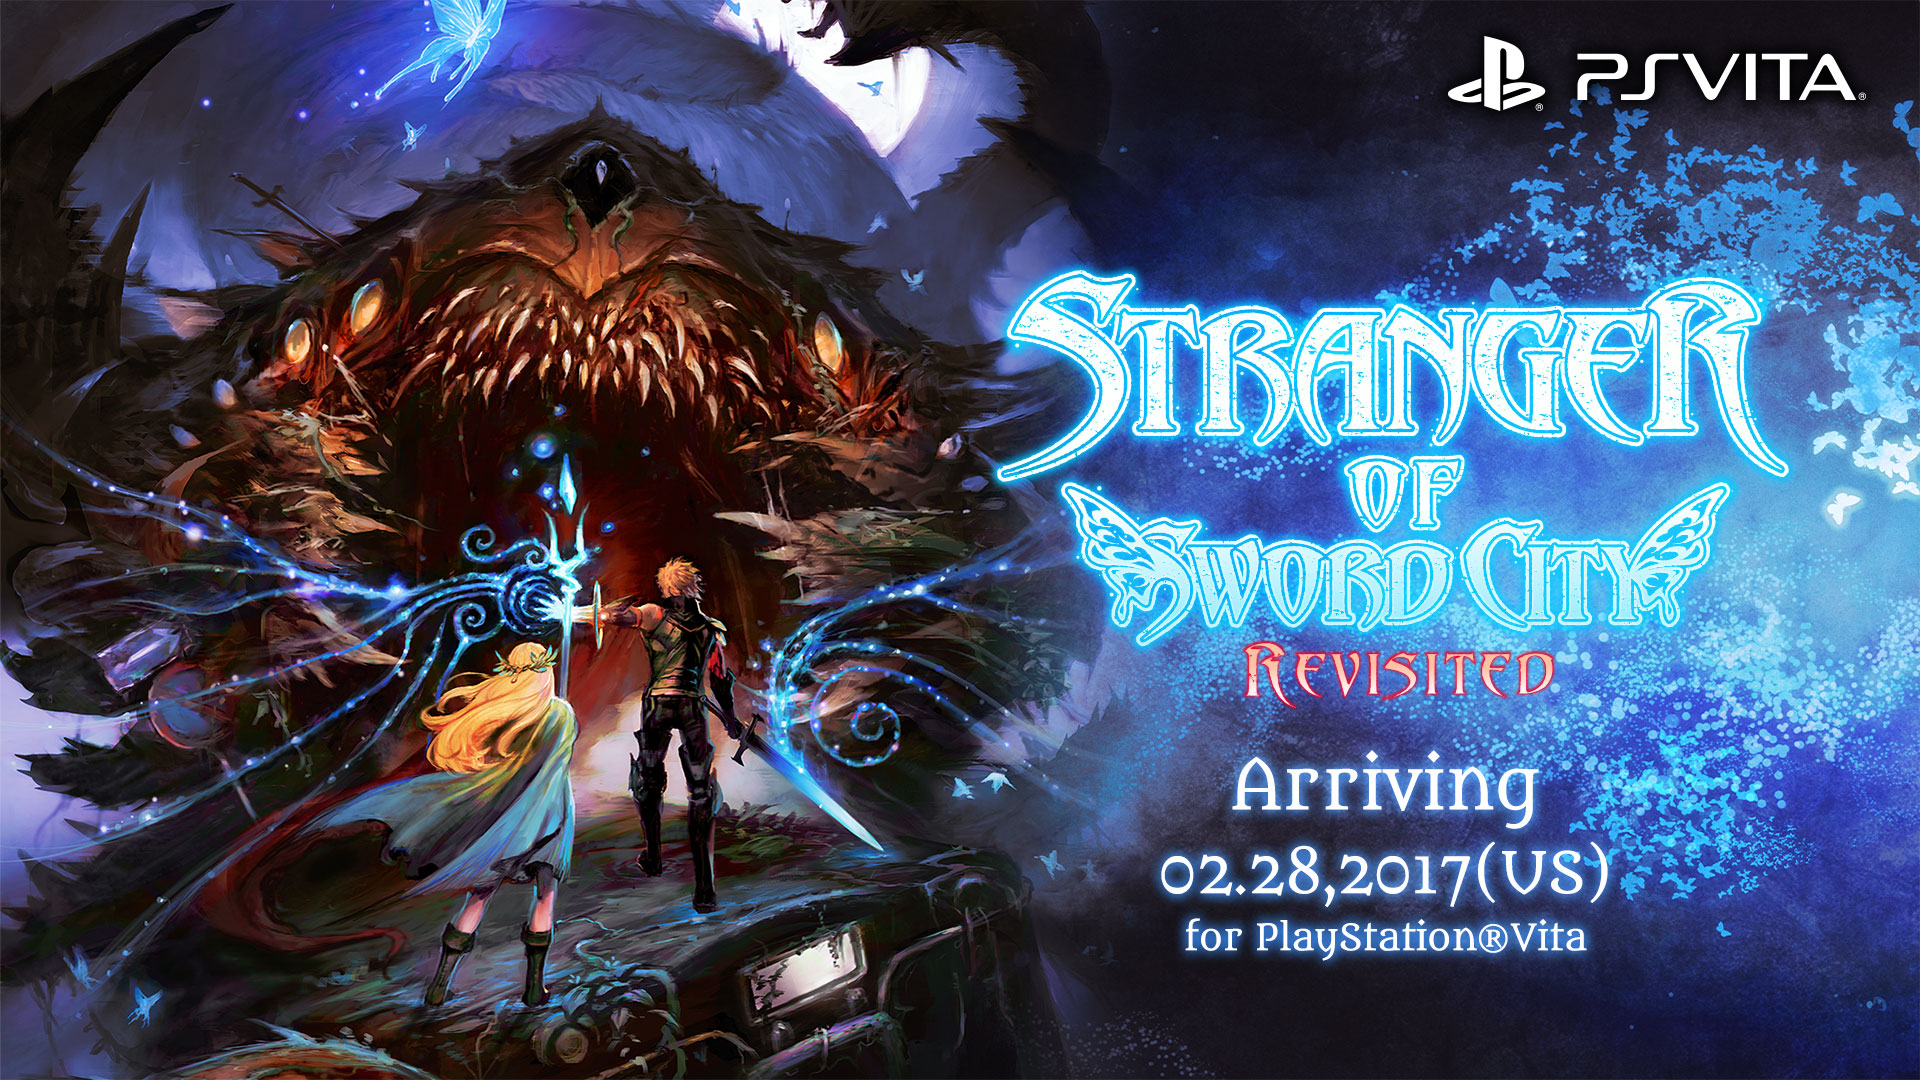 Stranger of Sword City Revisited: Arriving 02.28, 2017